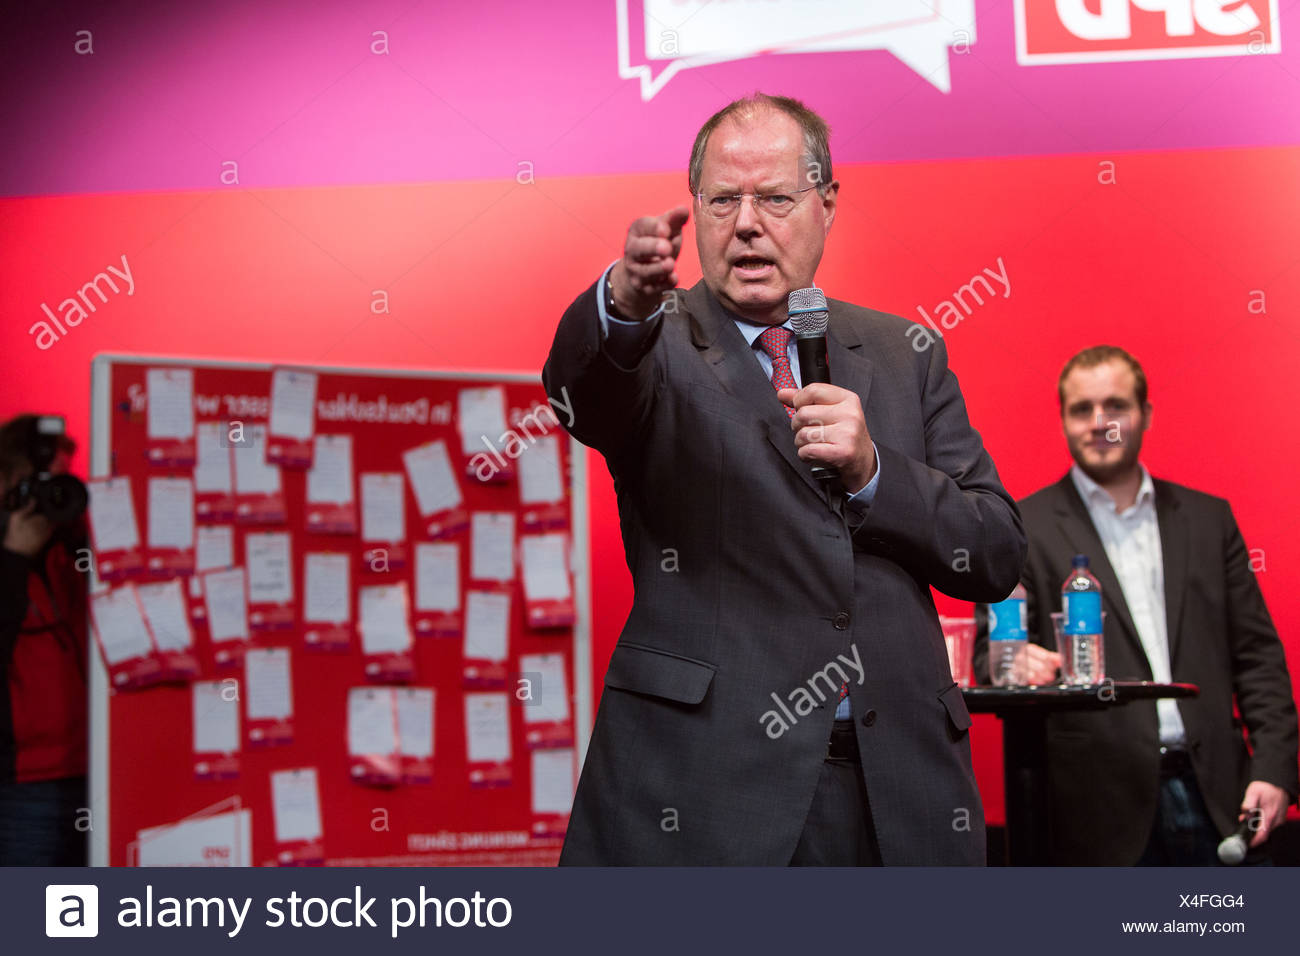 Hamburg, Germany, SPD mayor dialogue with Peer Steinbrueck - Stock Image